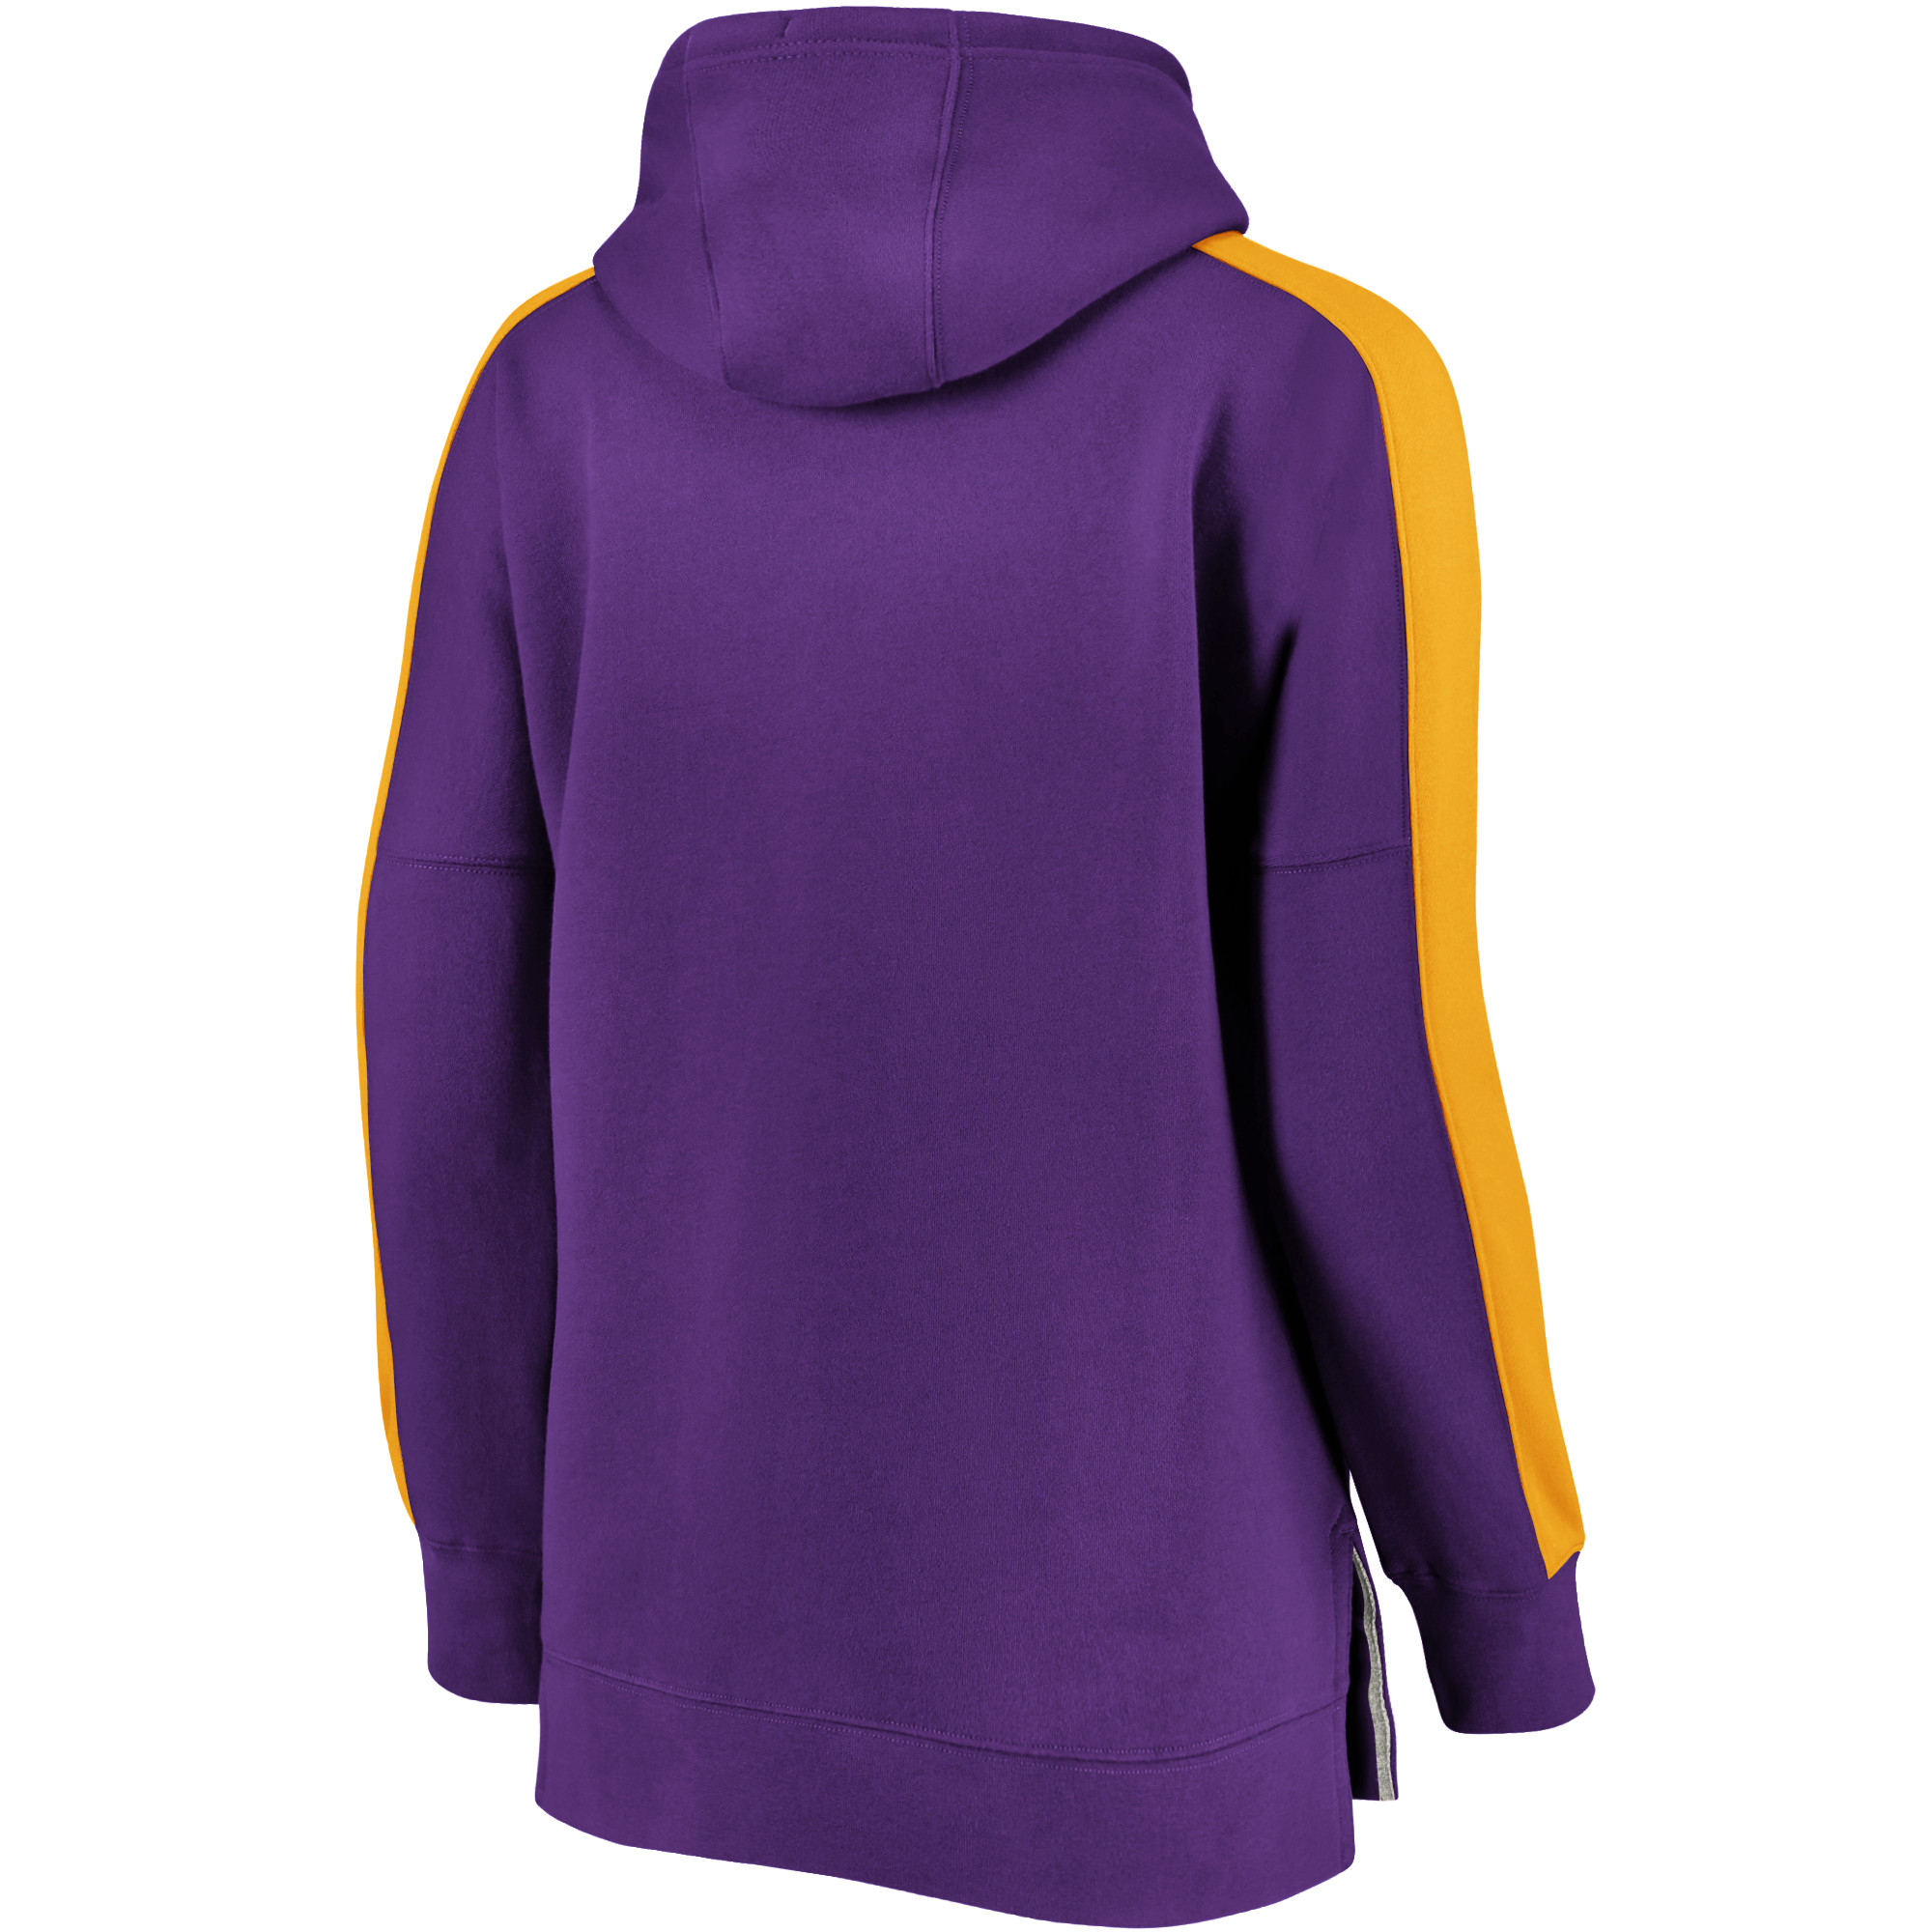 first rate d25b6 70e63 Minnesota Vikings NFL Pro Line by Fanatics Branded Women's Plus Size Color  Block Pullover Hoodie - Purple/Gold